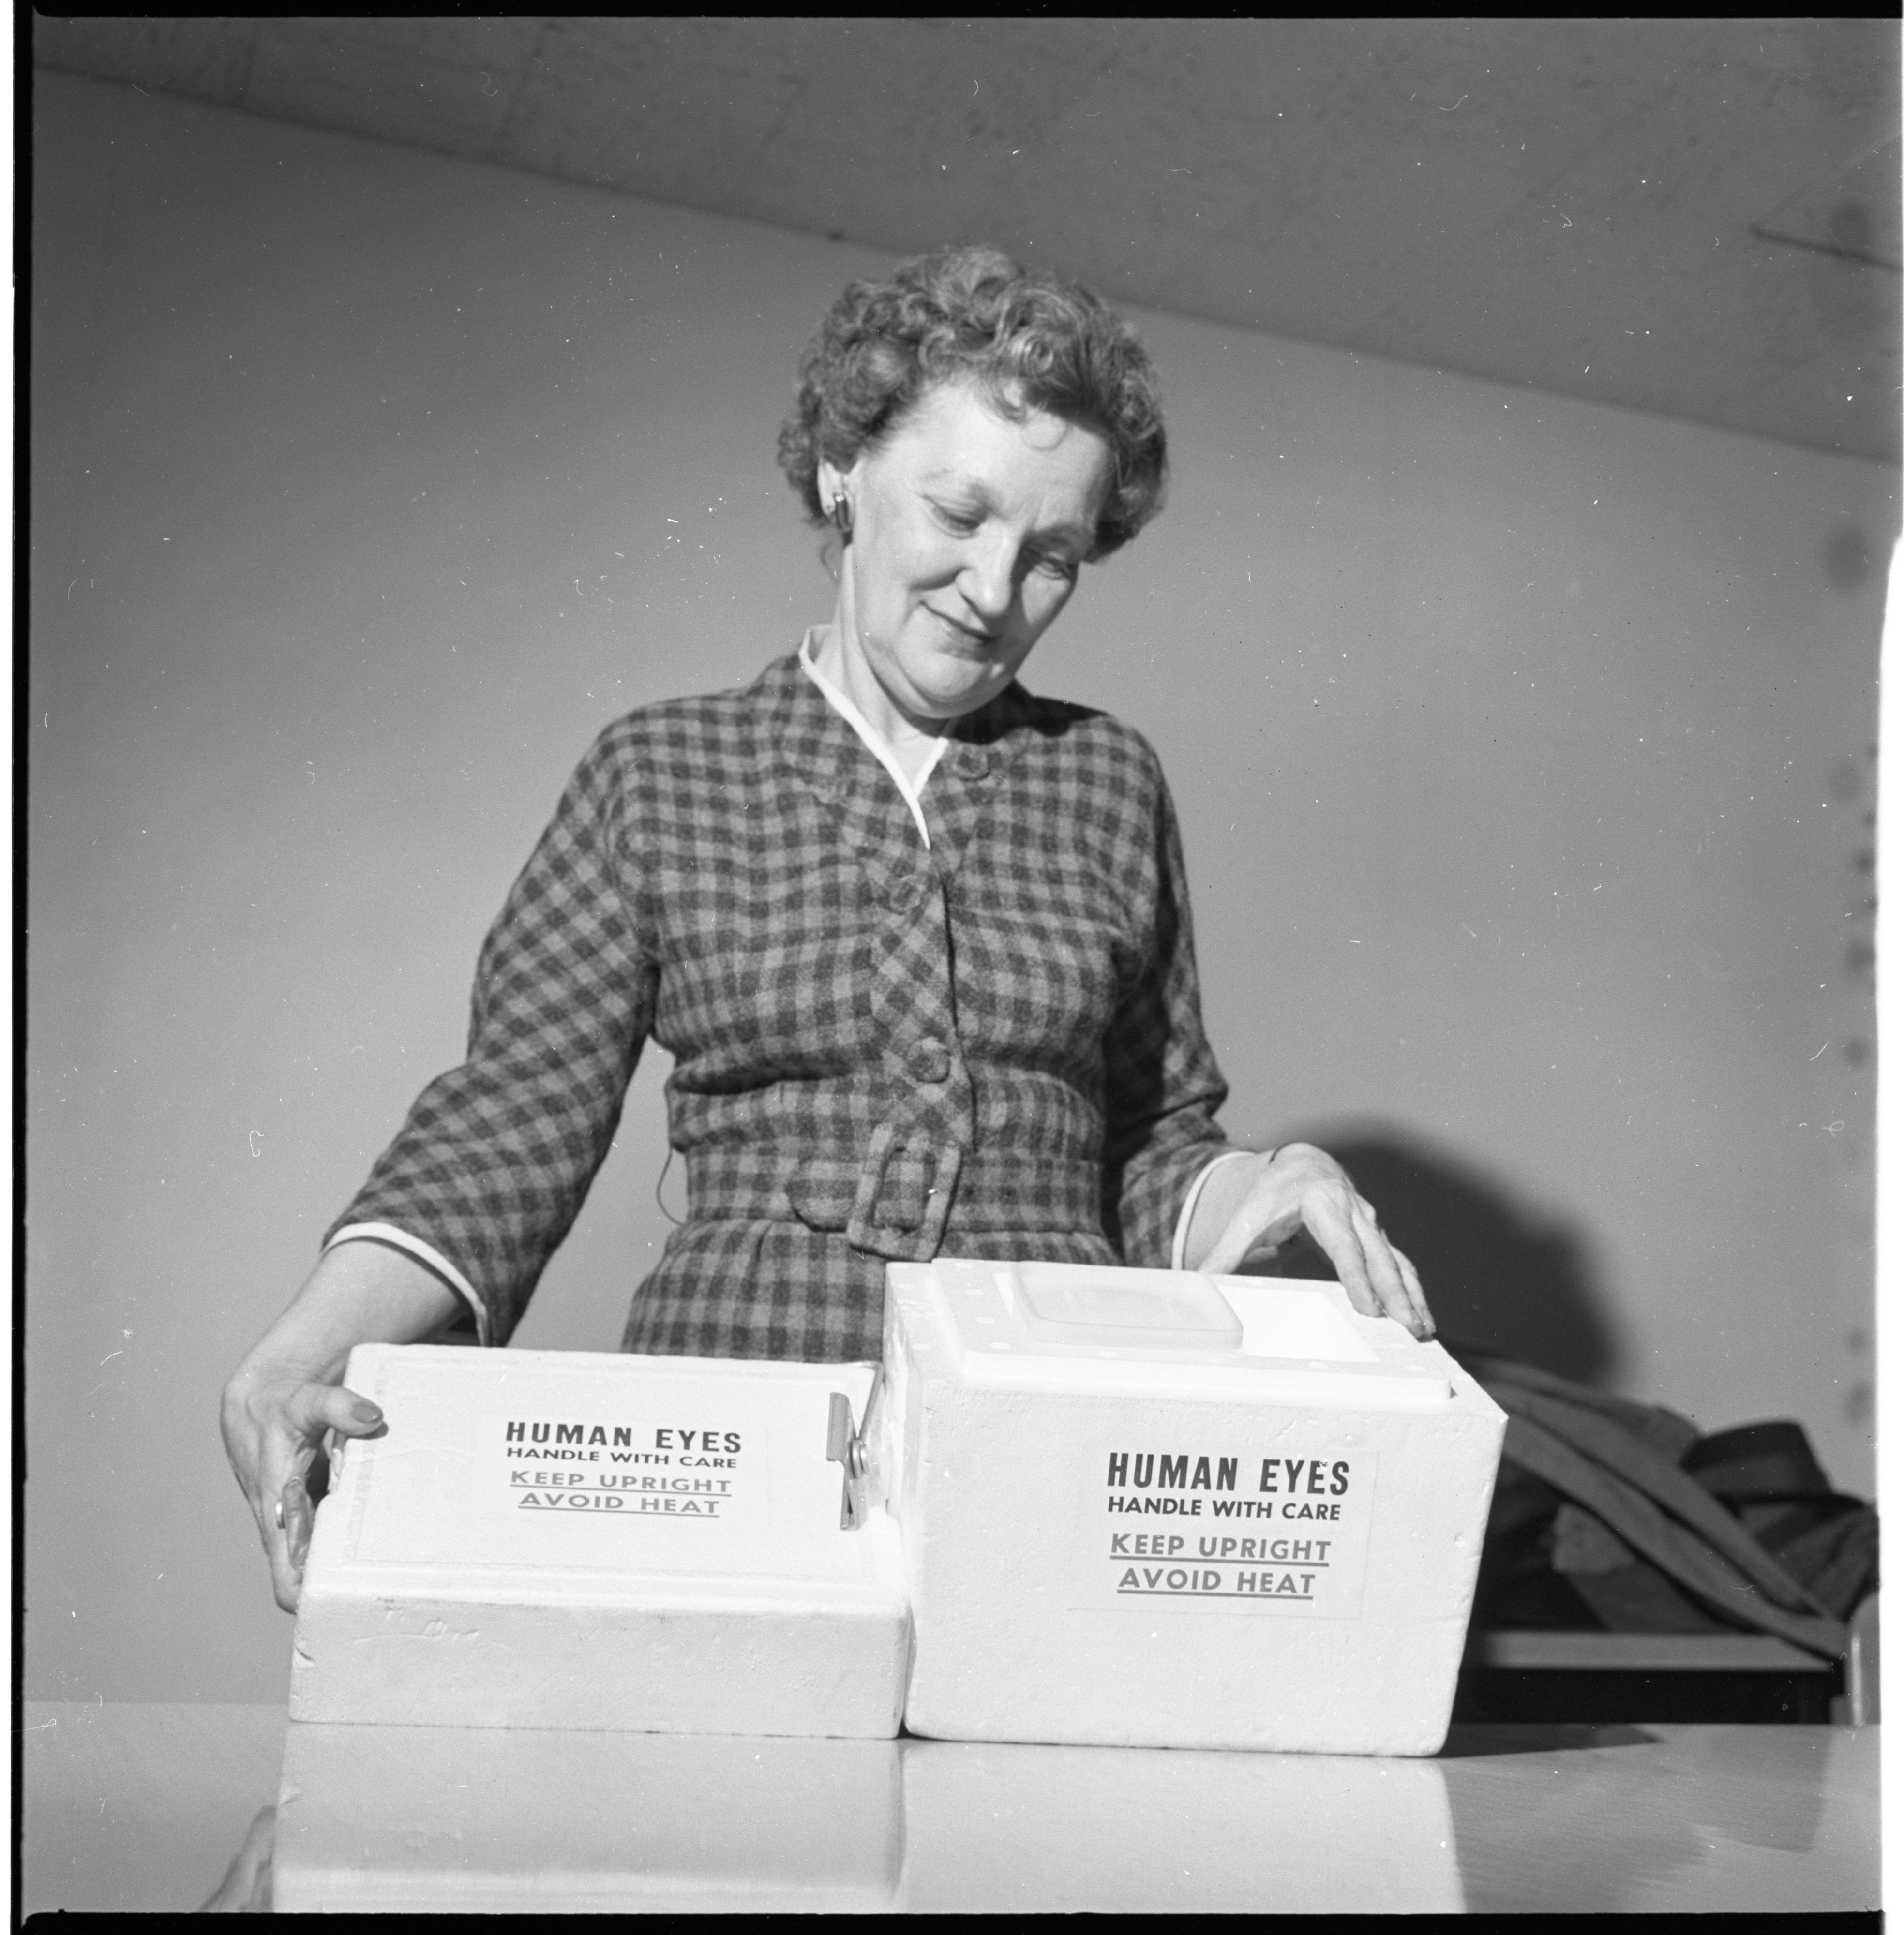 Mary F. Hubbell, Michigan Eye Bank, Displays Container For Transporting Donor Eyes At Ann Arbor Lions Club Meeting, February 1963 image